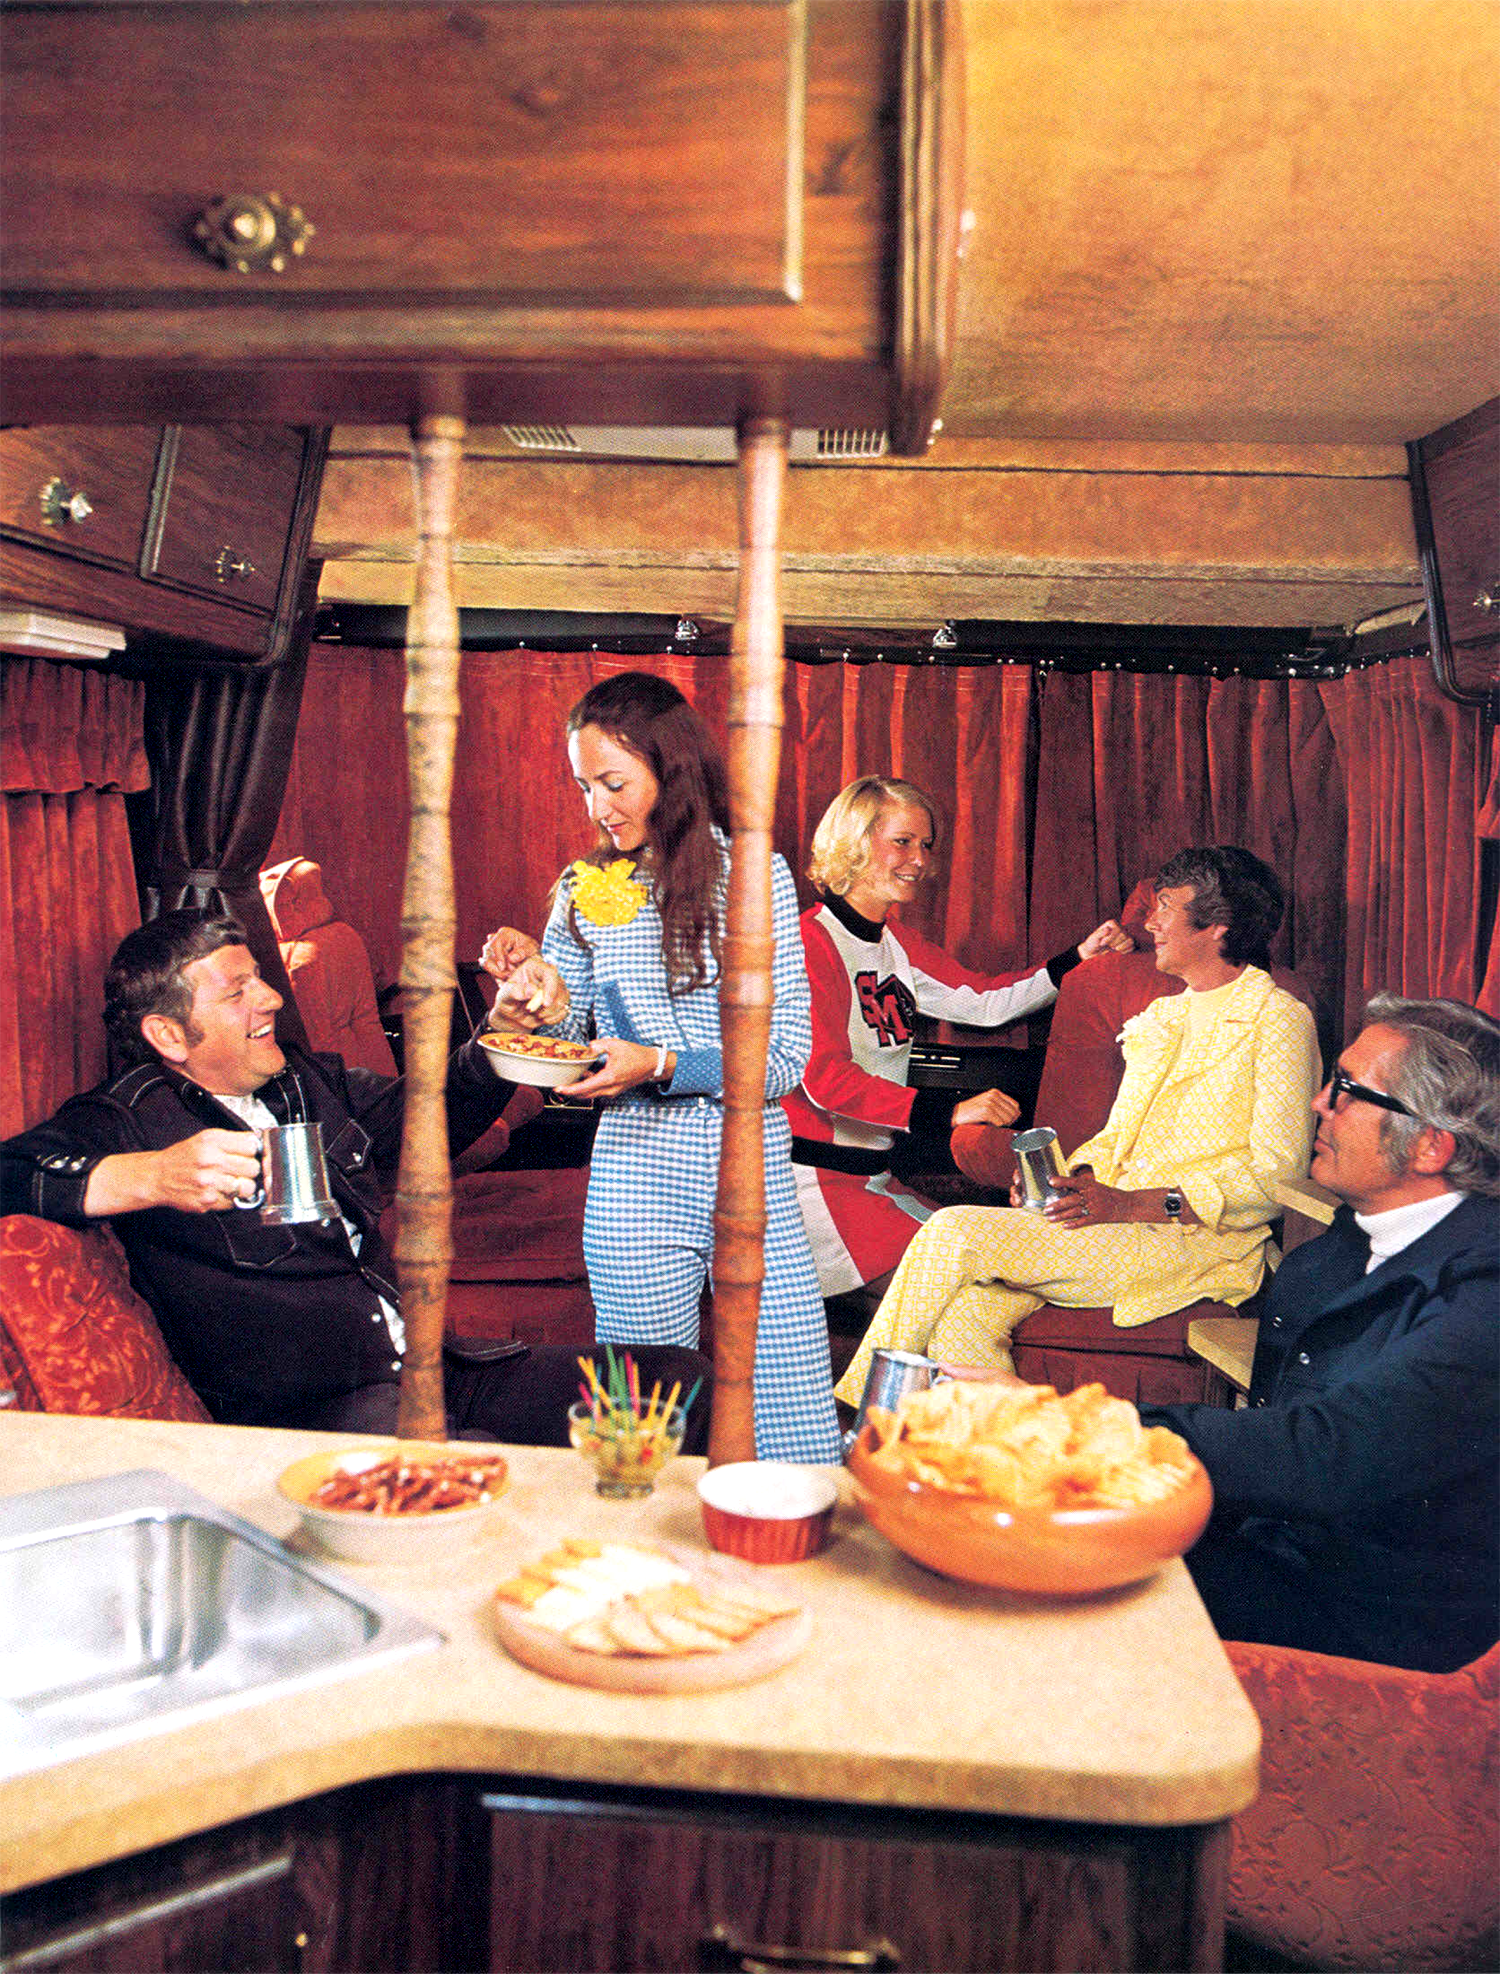 Campers of Shag (Part 2): Another Look Inside Groovy RV's of